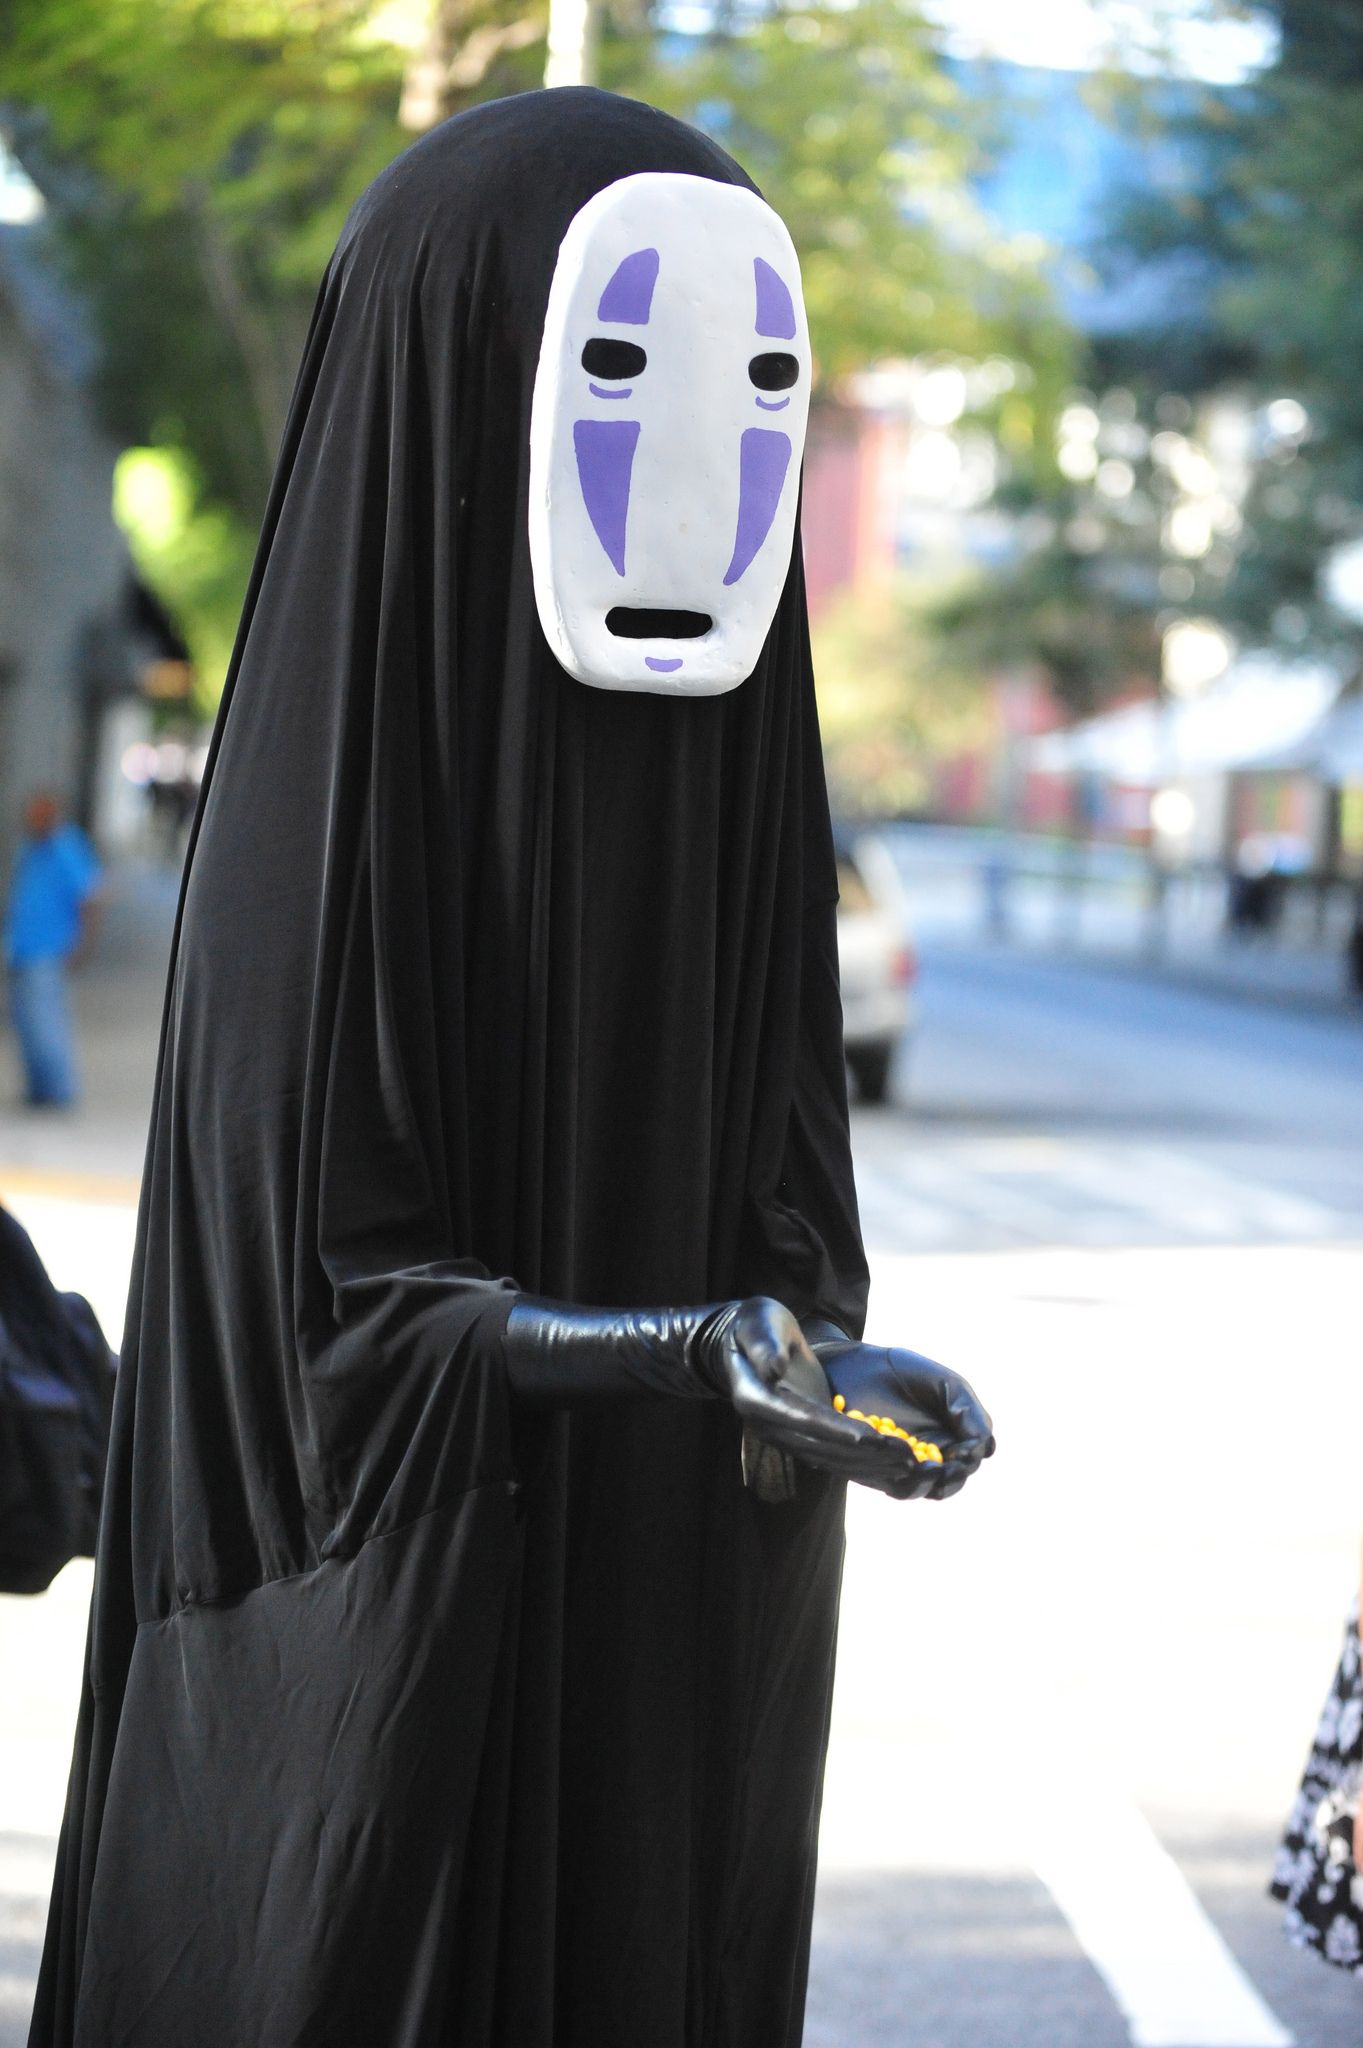 NoFace from the anime movie Spirited Away No face